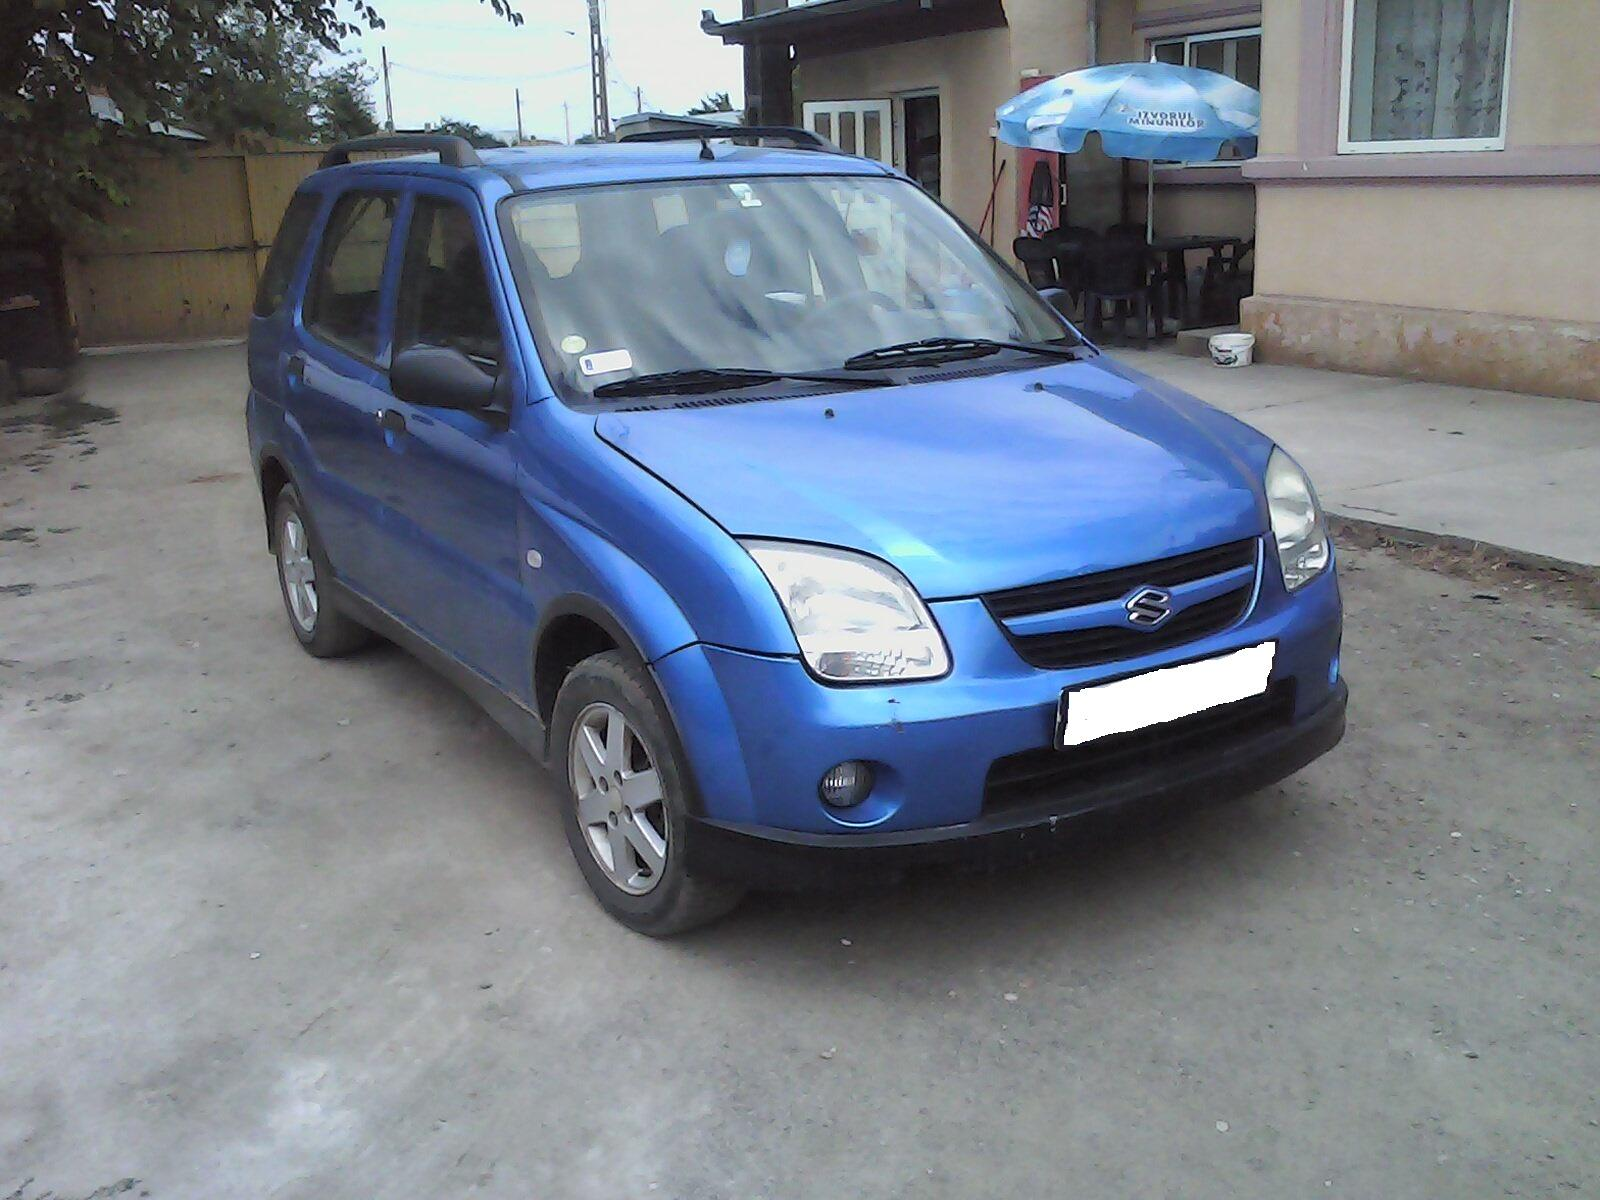 2003 suzuki ignis 1 3 related infomation specifications. Black Bedroom Furniture Sets. Home Design Ideas